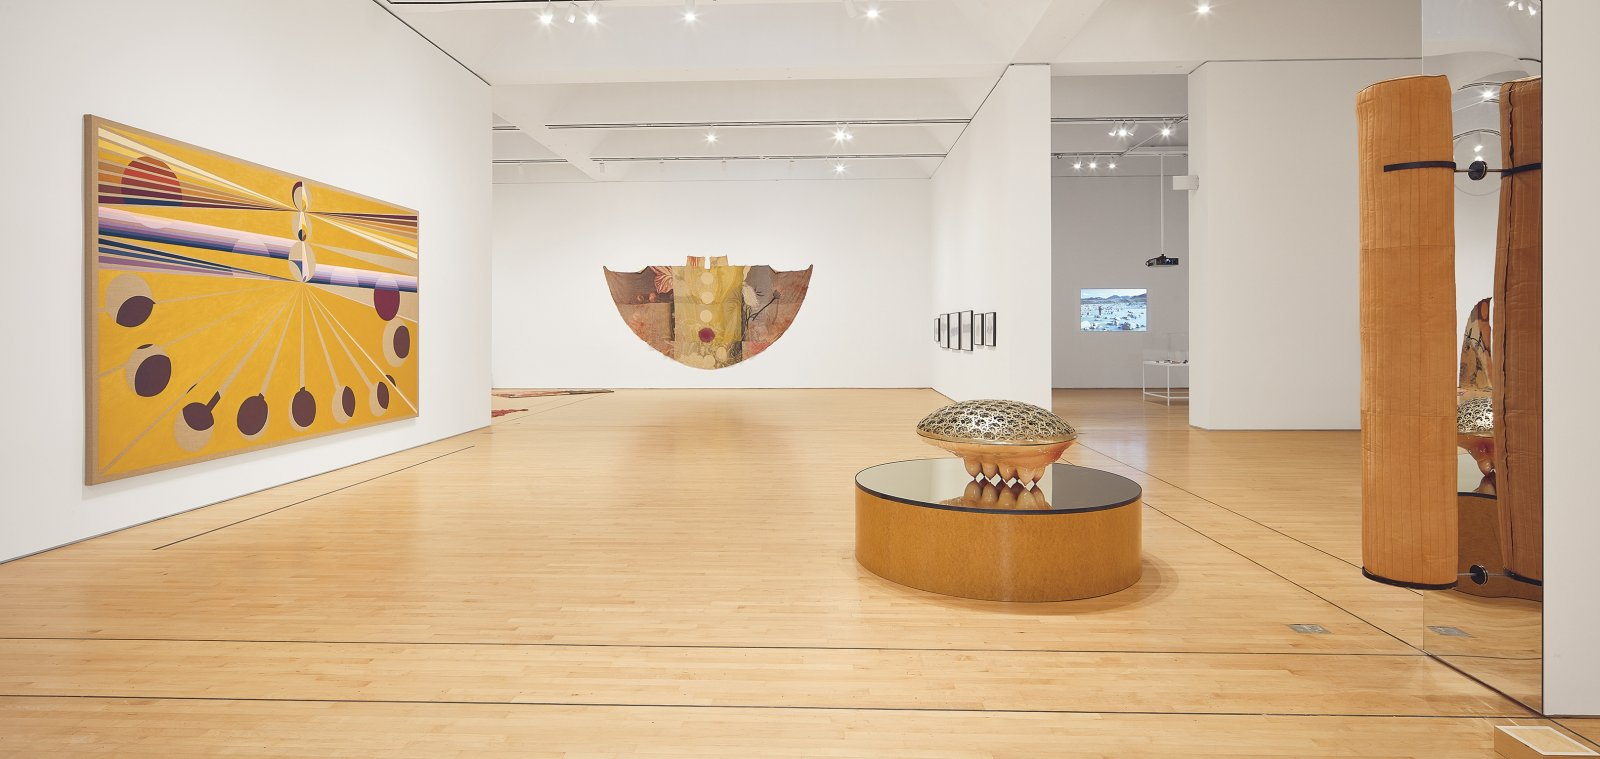 Duane Linklater, can the circle be unbroken 1–5, 2019, digital print on linen, dye, charcoal, mixed media, installation dimensions variable. Installation view, SOFT POWER, SF MOMA, San Francisco, USA, 2019 by Duane Linklater